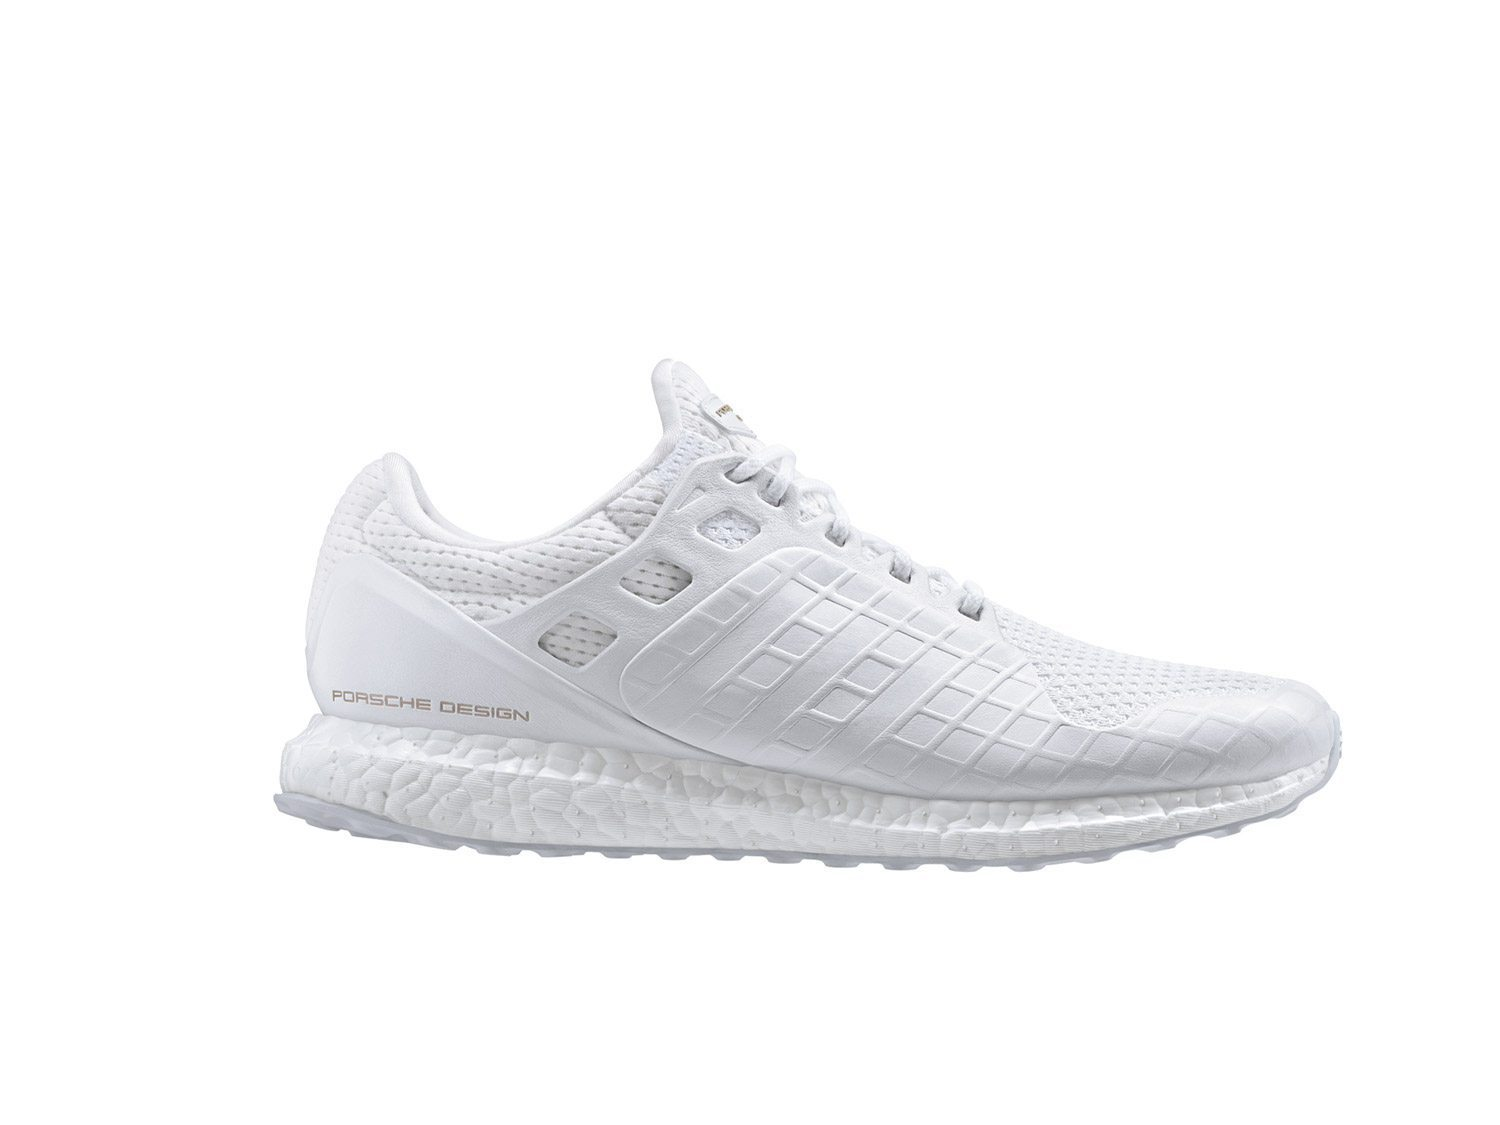 Porsche x adidas Ultra Boost All White 2